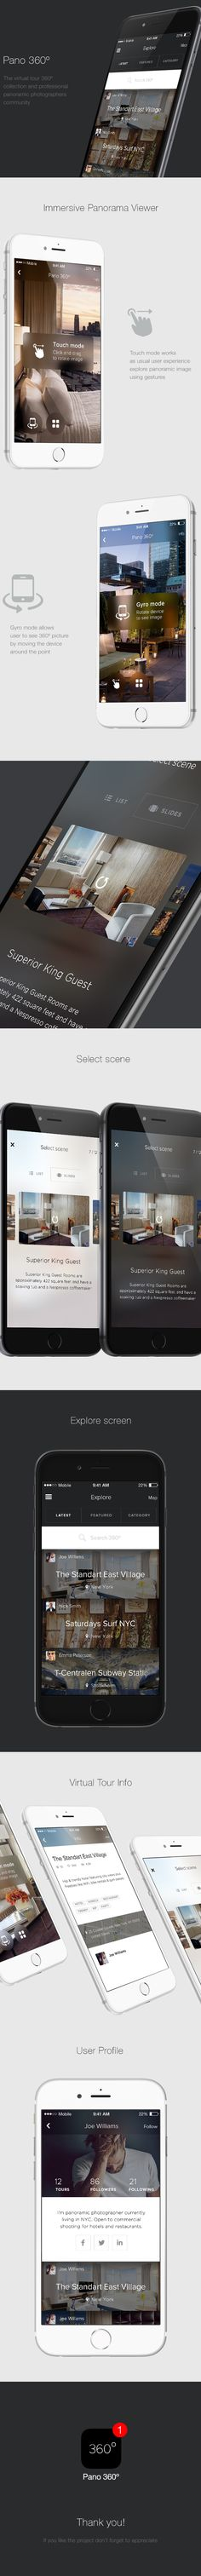 Pano 360º - UX/UI iPhone app design on Behance